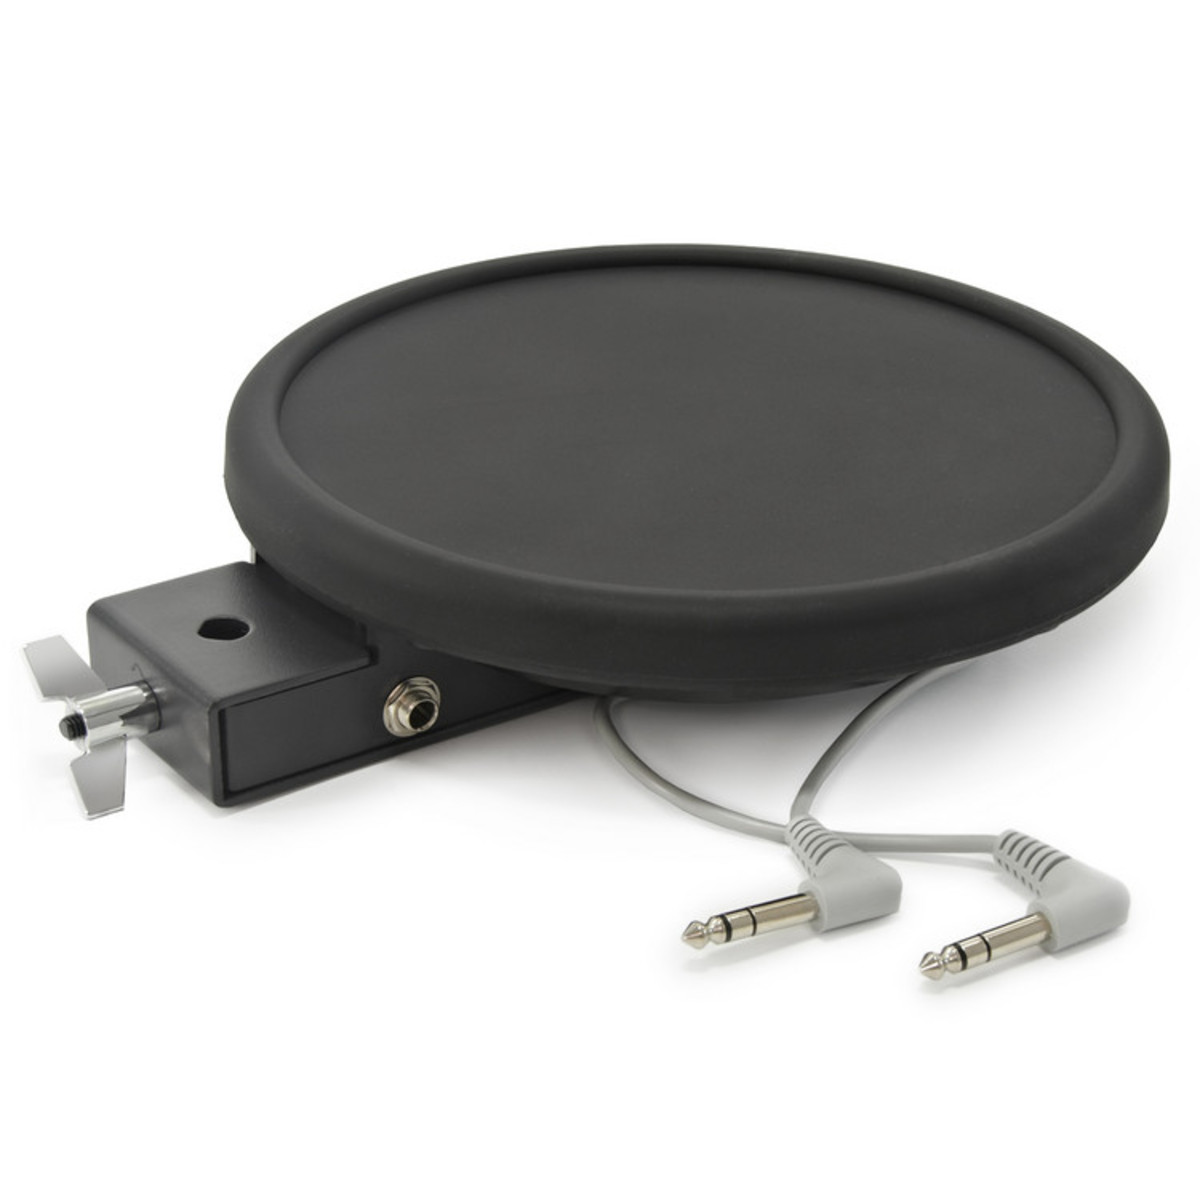 digital drums dual zone electronic drum pad b stock at. Black Bedroom Furniture Sets. Home Design Ideas